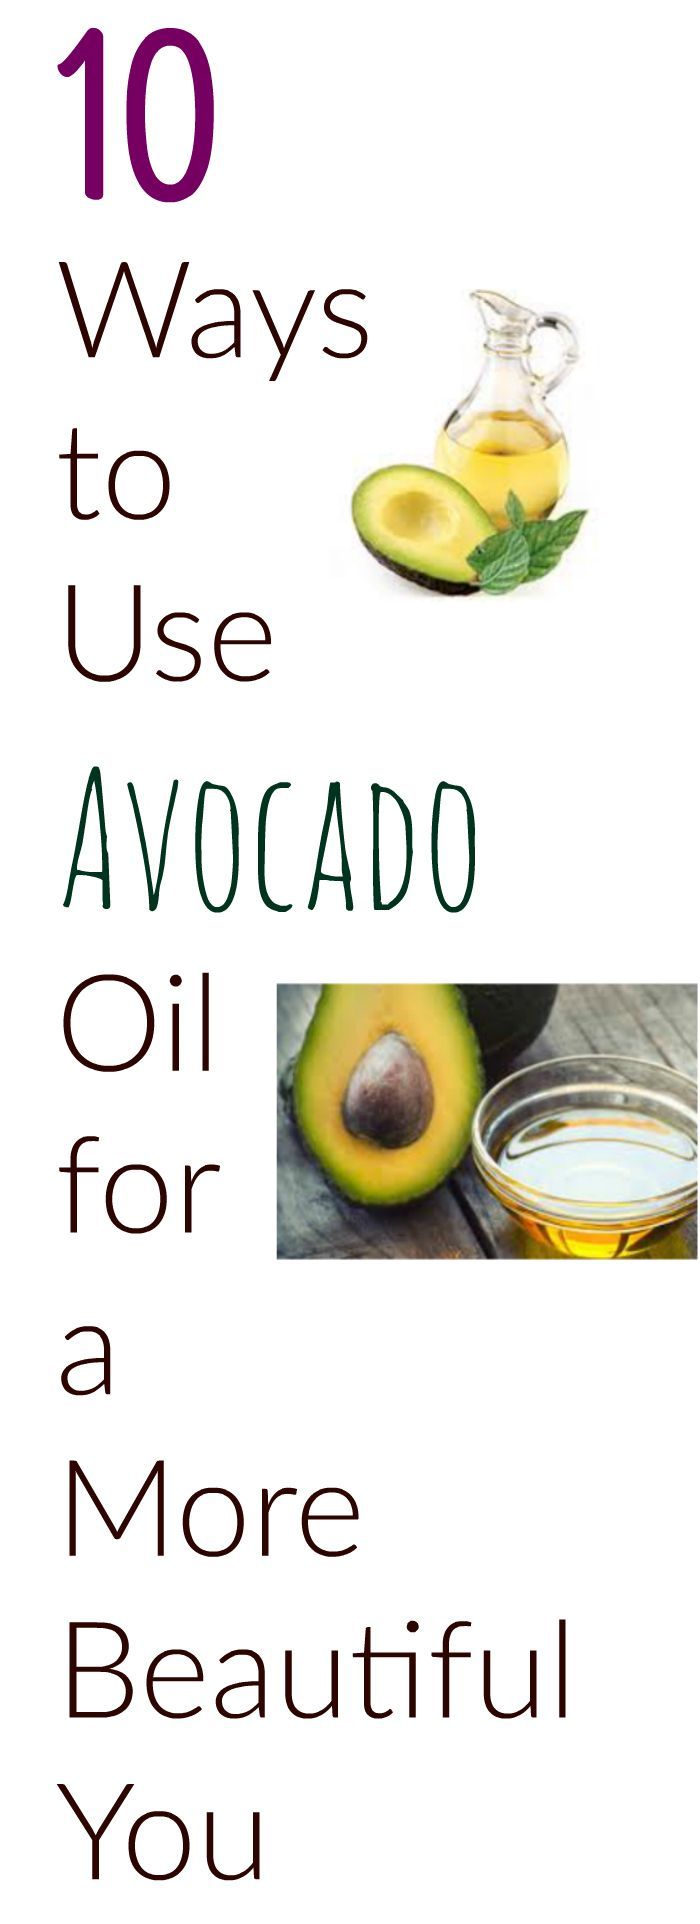 Avocado oil is the new coconut oil of beauty